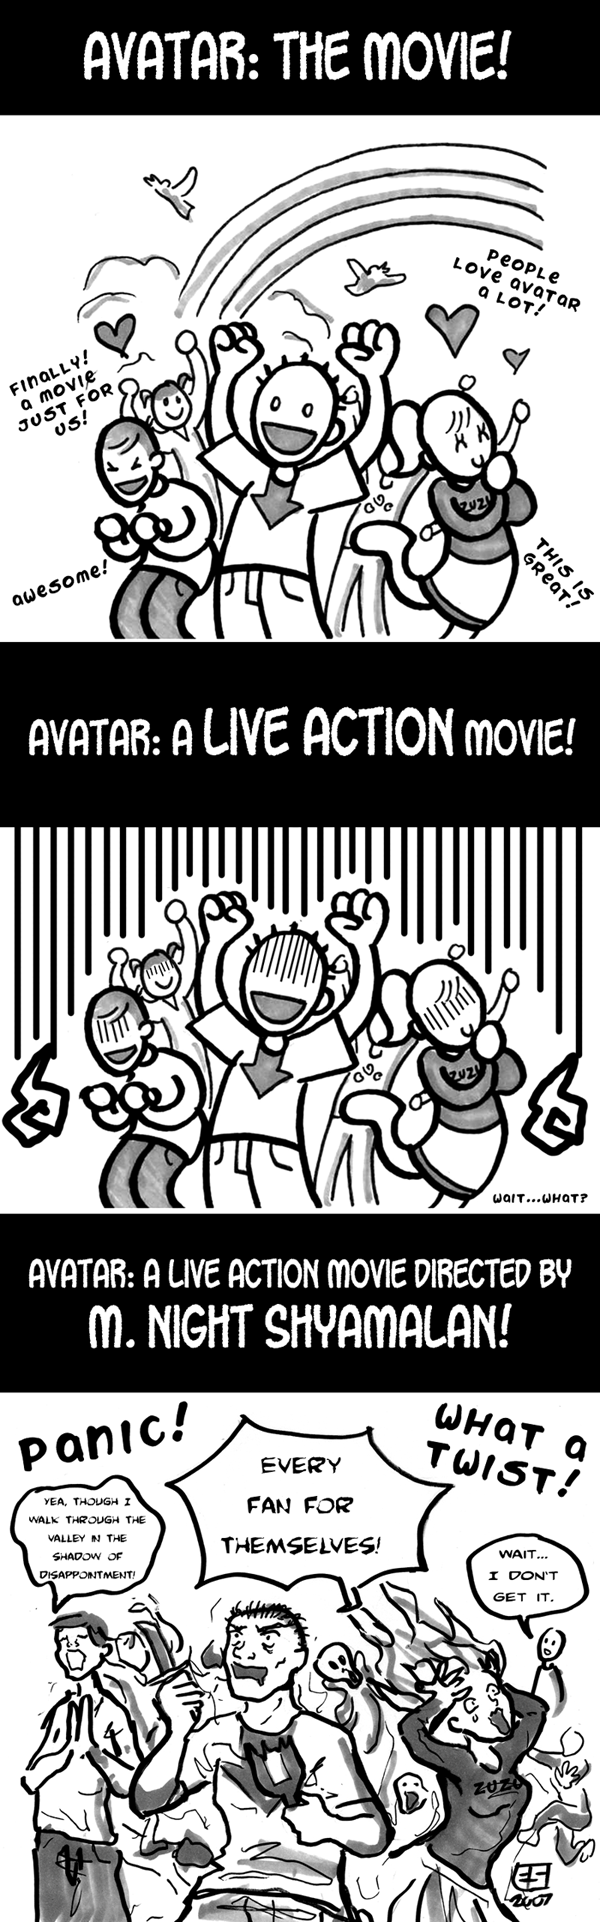 http://fc76.deviantart.com/fs15/f/2007/084/b/5/Avatar___The_MOVIE__by_Booter_Freak.png